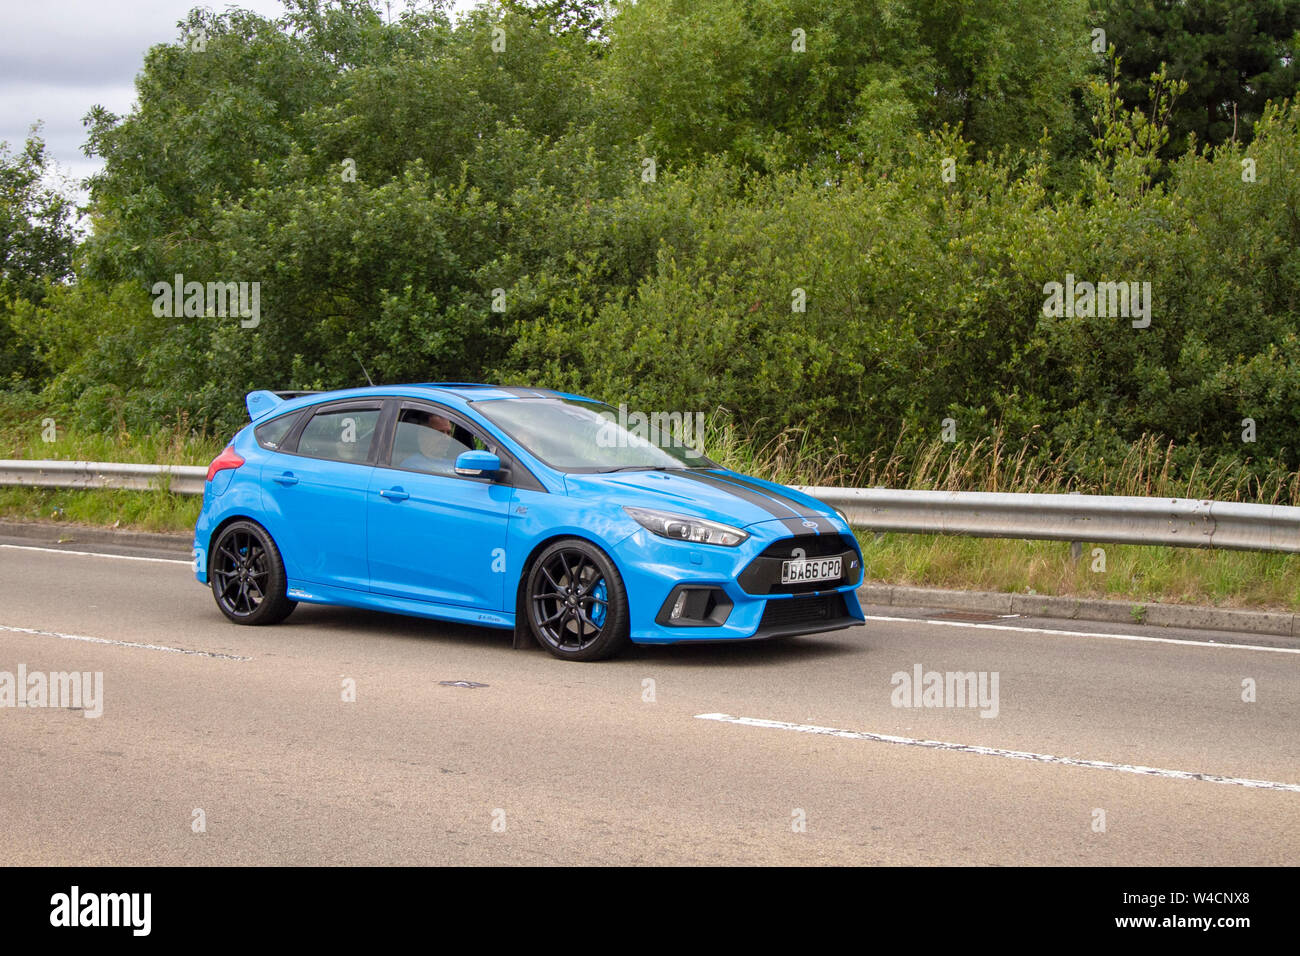 Blue Ford Focus Rs Fotos E Imagenes De Stock Alamy